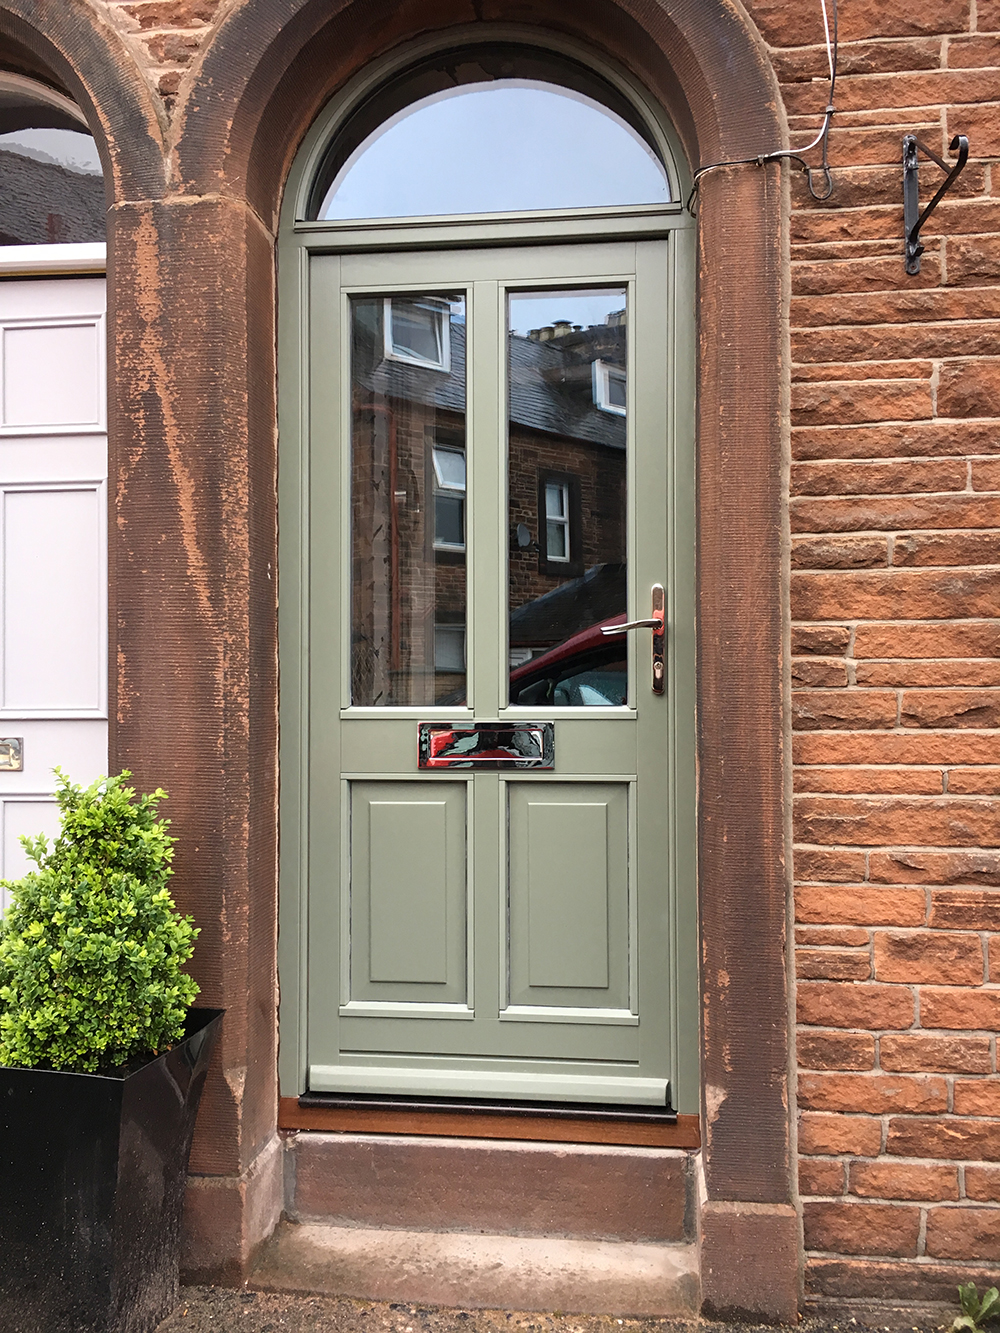 AJ&D Chapelhow (Cliburn) Ltd, creating fine quality timber doors for over 50 years